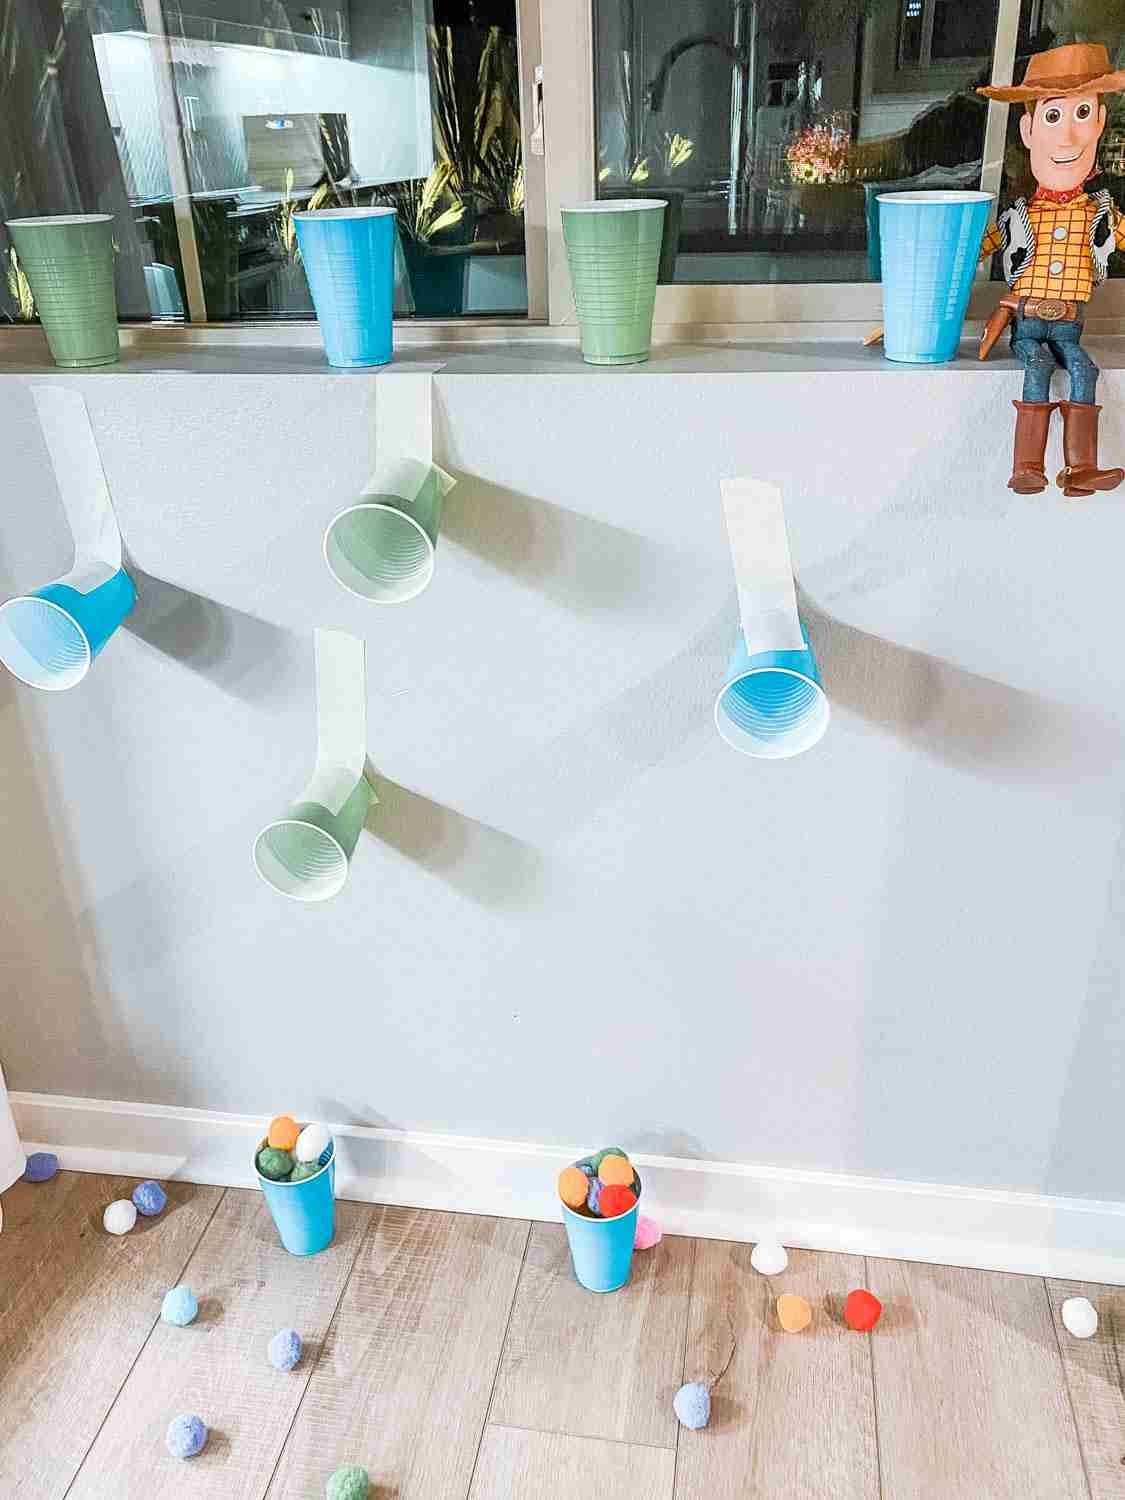 Pom poms and cups set up as Midway Mania game with Woody for Disneyland at home